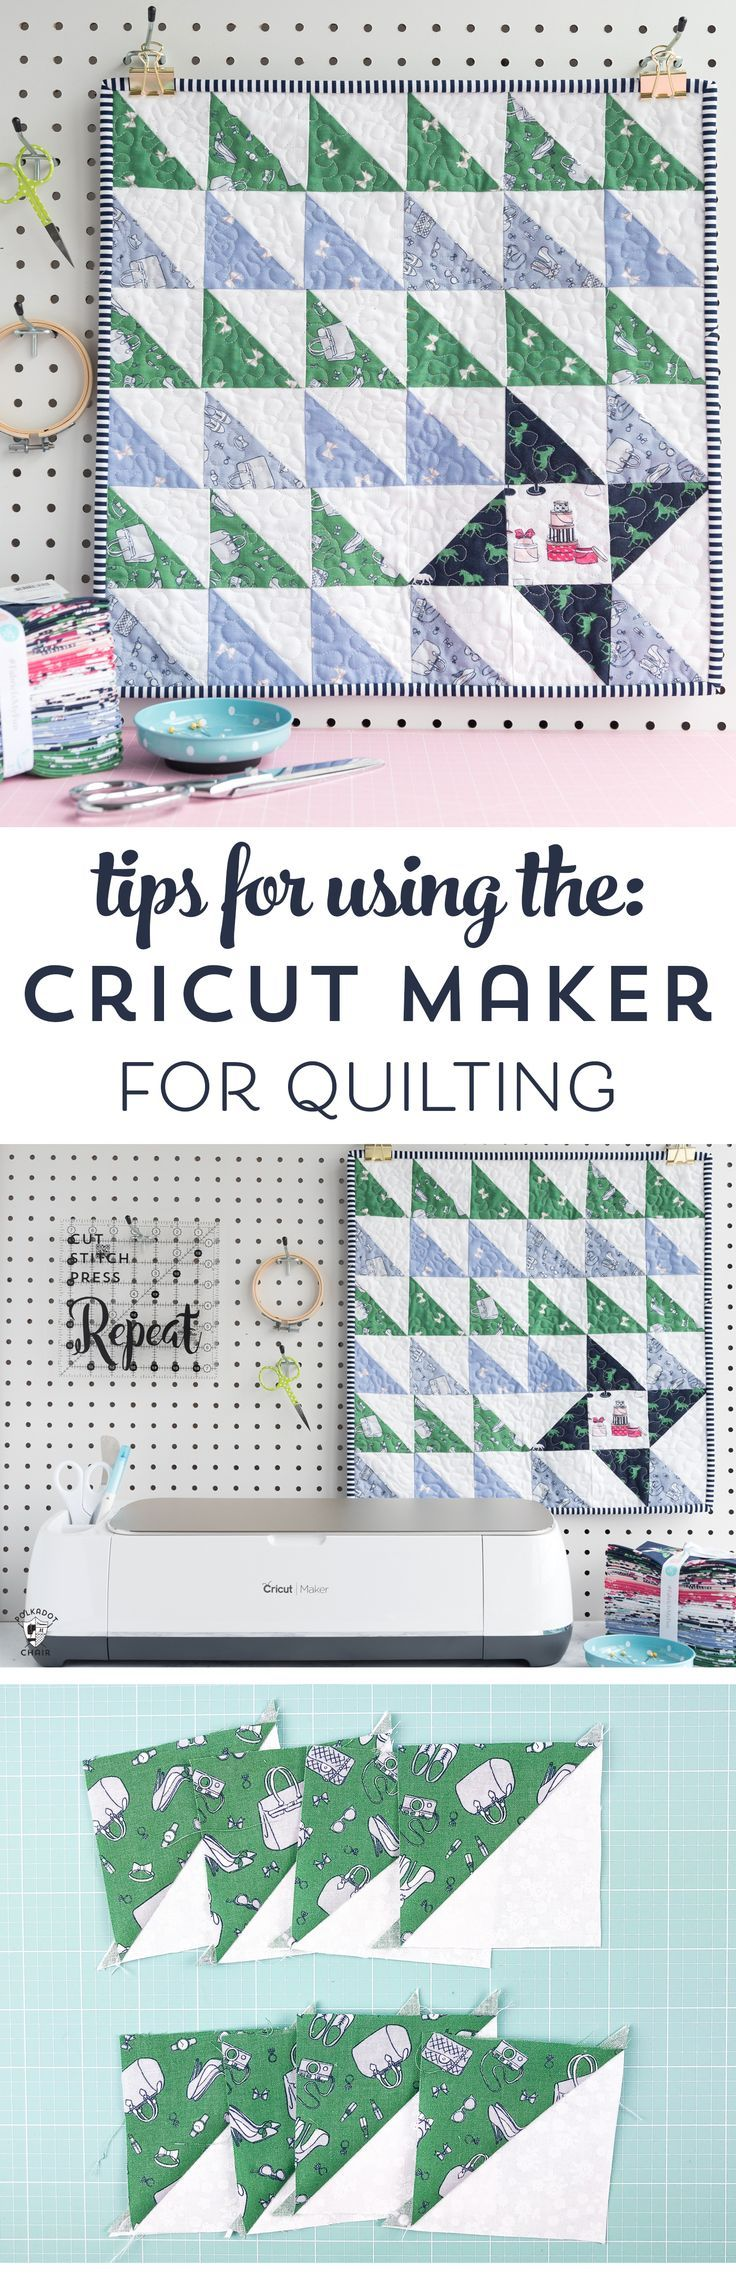 Tips and tricks for using the cricut maker for quilting and adapting the maker f...